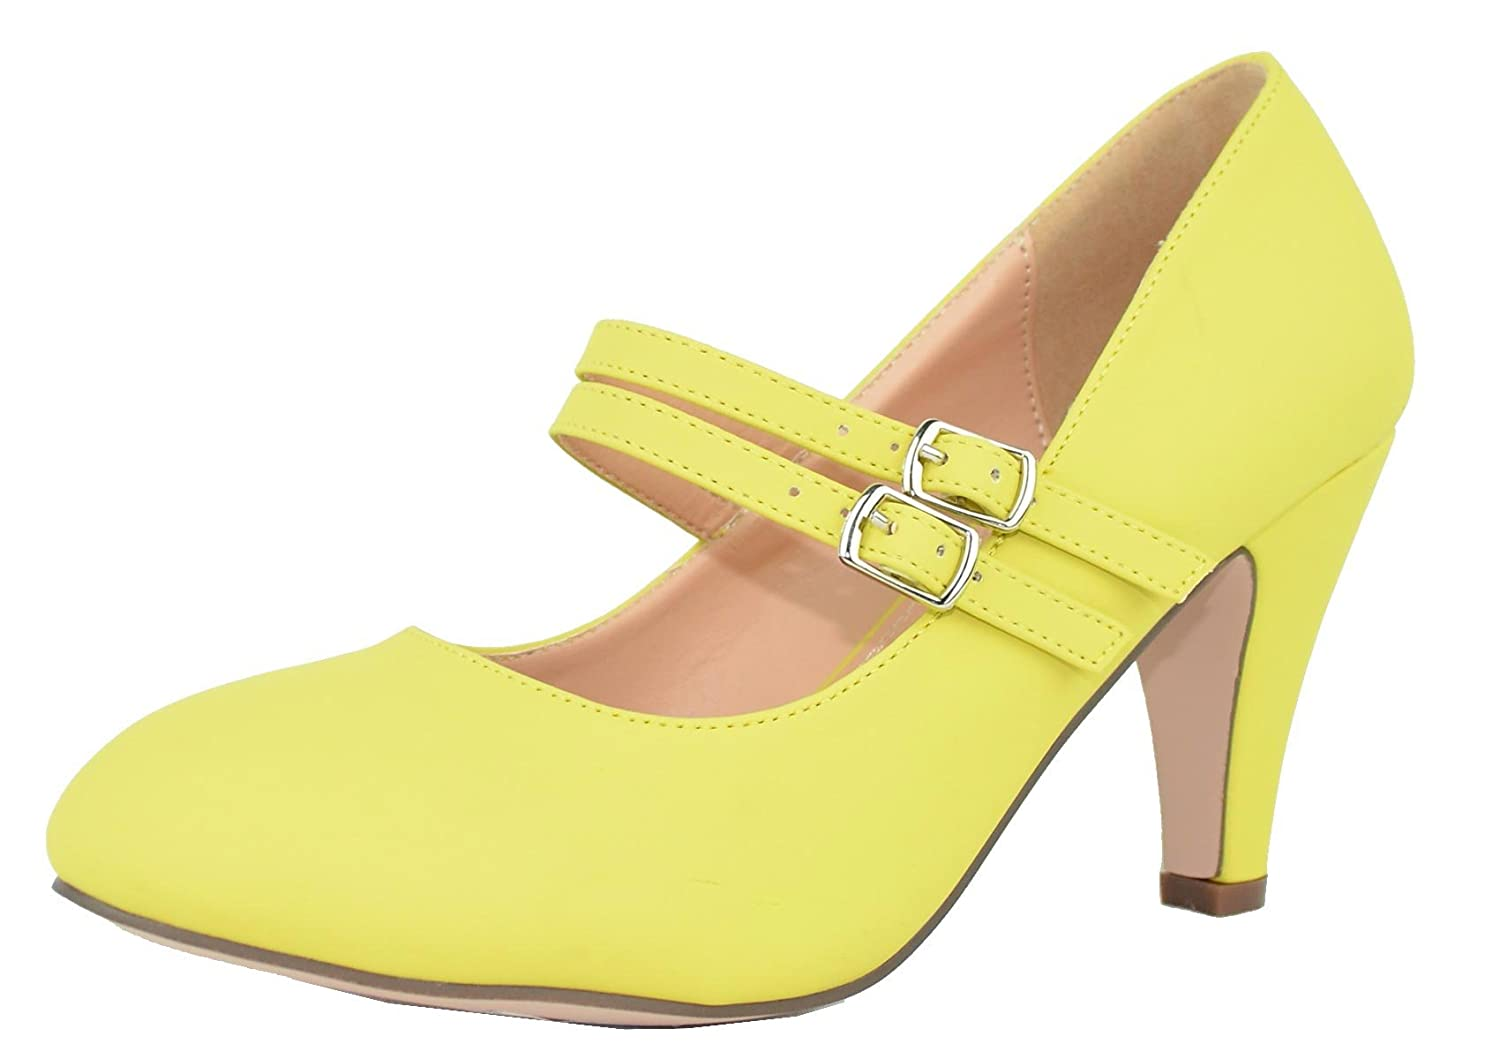 Chase & Chloe Kimmy-61 Women's Mary Jane Double Strap Buckle Pump B073WLQP23 7.5 B(M) US|Yellow